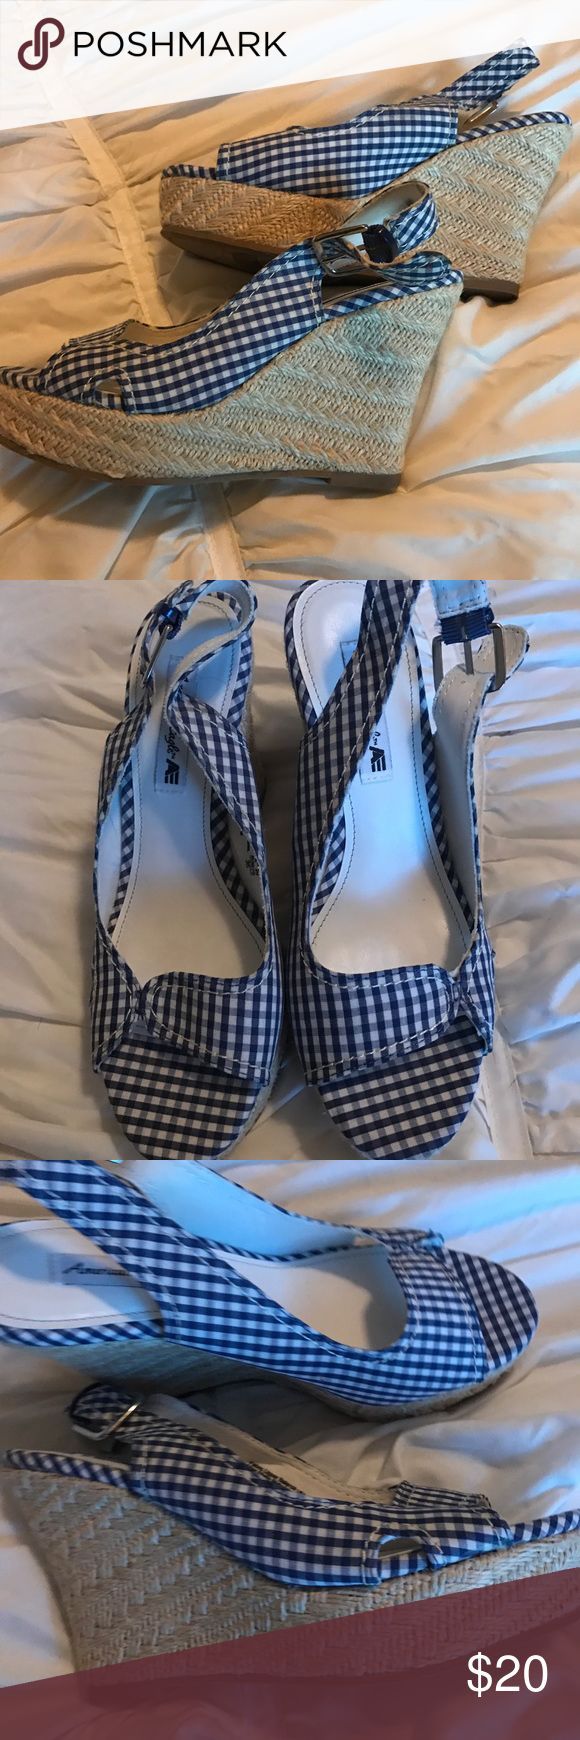 Adorable ladies shoes by American Eagle Super cute ladies shoes by American Eagle in size six! No box but never worn! Wedge height is 3.5-4 inches. All of my items ship quickly from a smoke free home. I don't trade or accept low ball offers. Thanks for looking. American Eagle Shoes Wedges